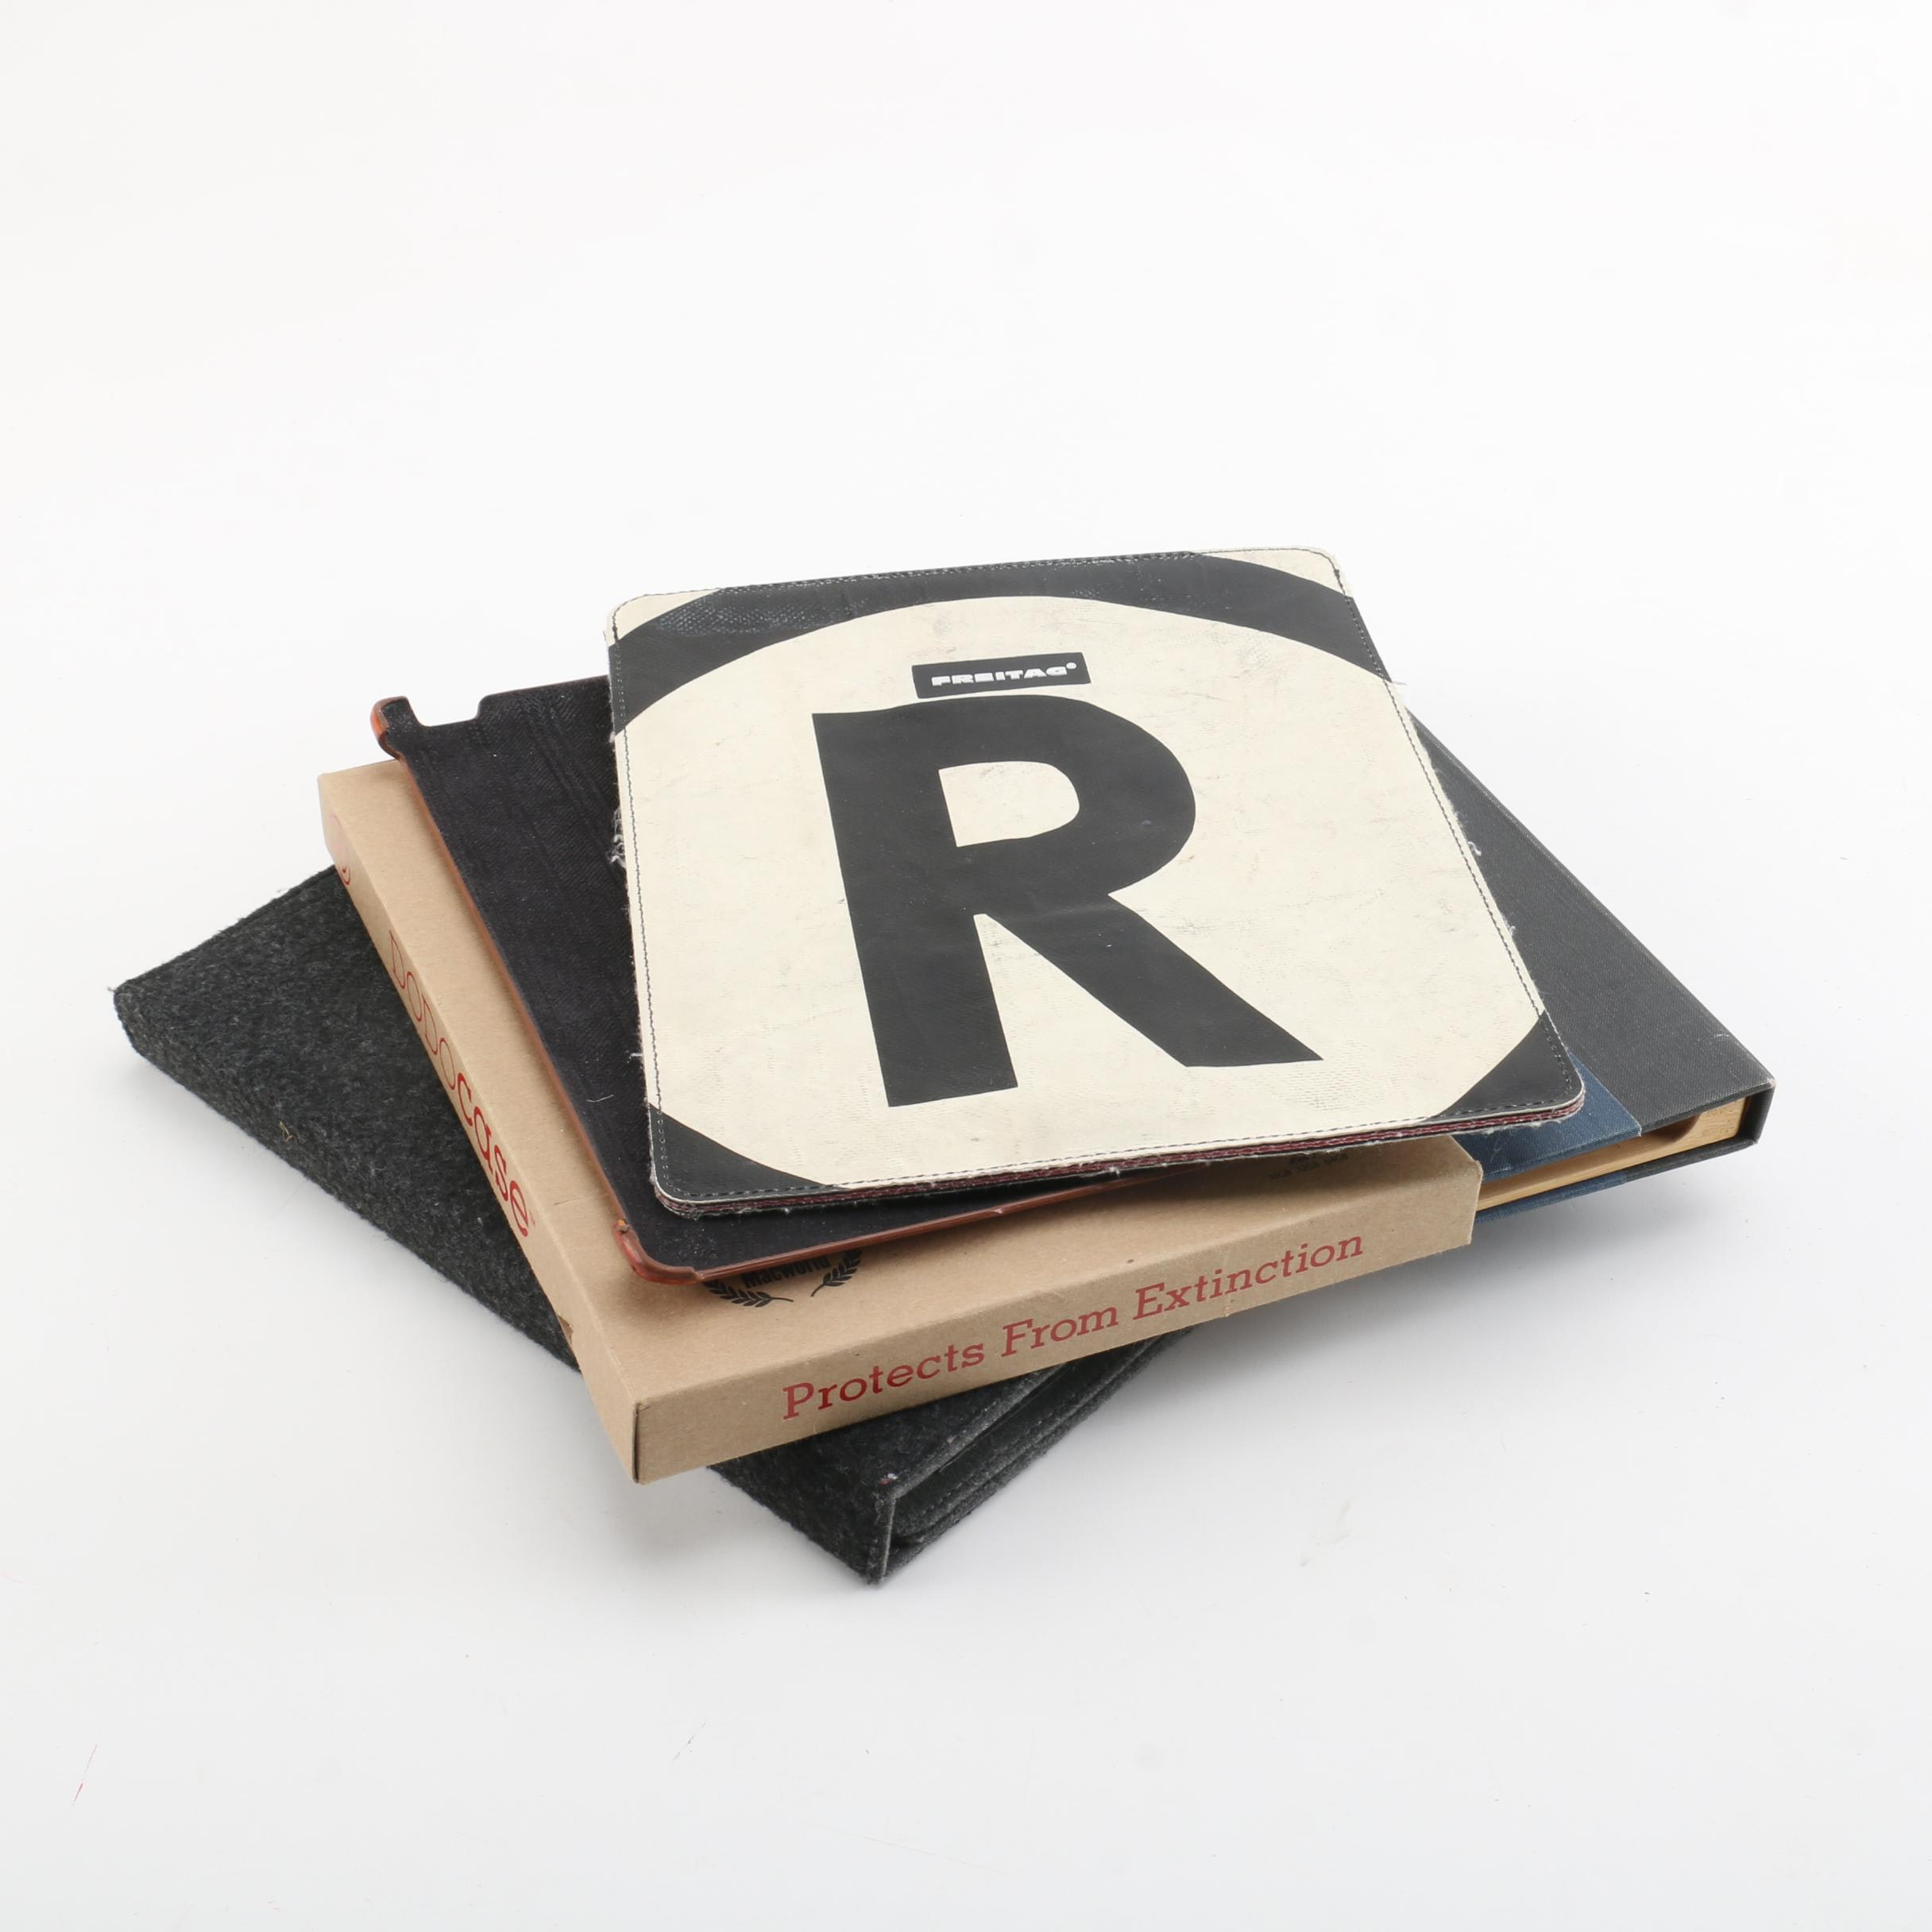 iPad Covers and Cases